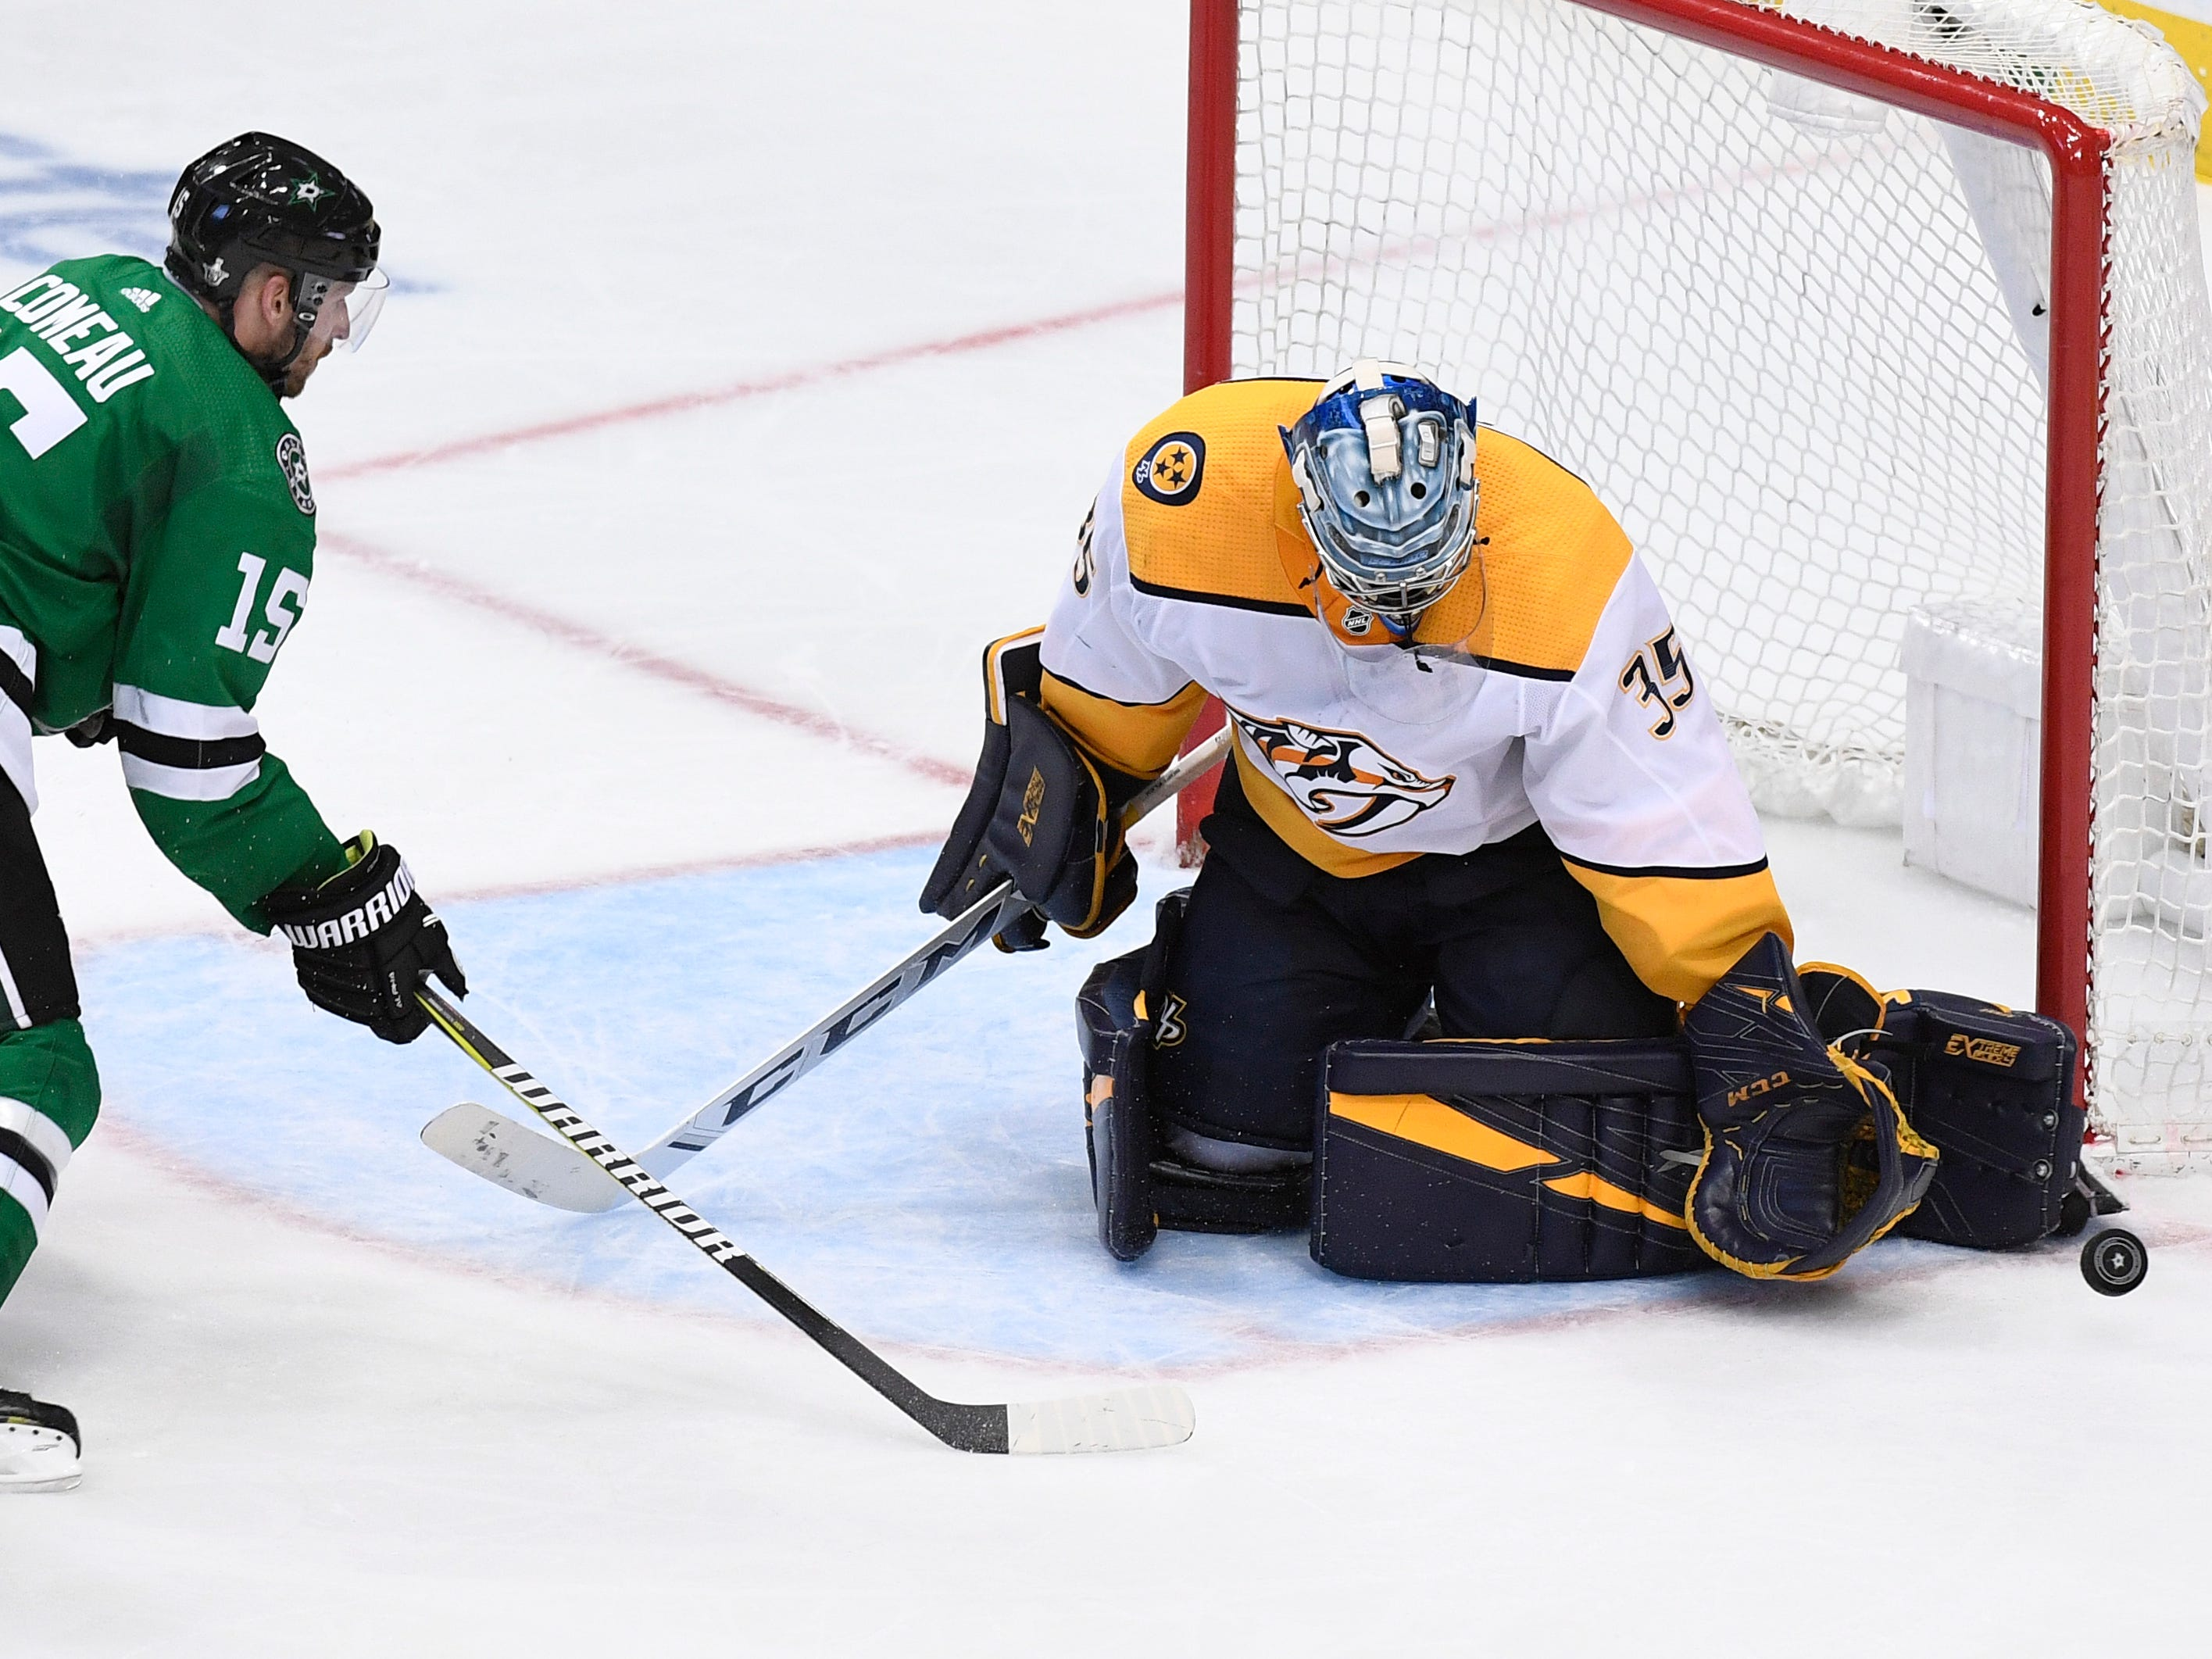 Nashville Predators goaltender Pekka Rinne (35) defends the net in front of Dallas Stars left wing Blake Comeau (15) and Nashville Predators defenseman Mattias Ekholm (14) during overtime of the divisional semifinal game at the American Airlines Center in Dallas, Texas, Monday, April 22, 2019.